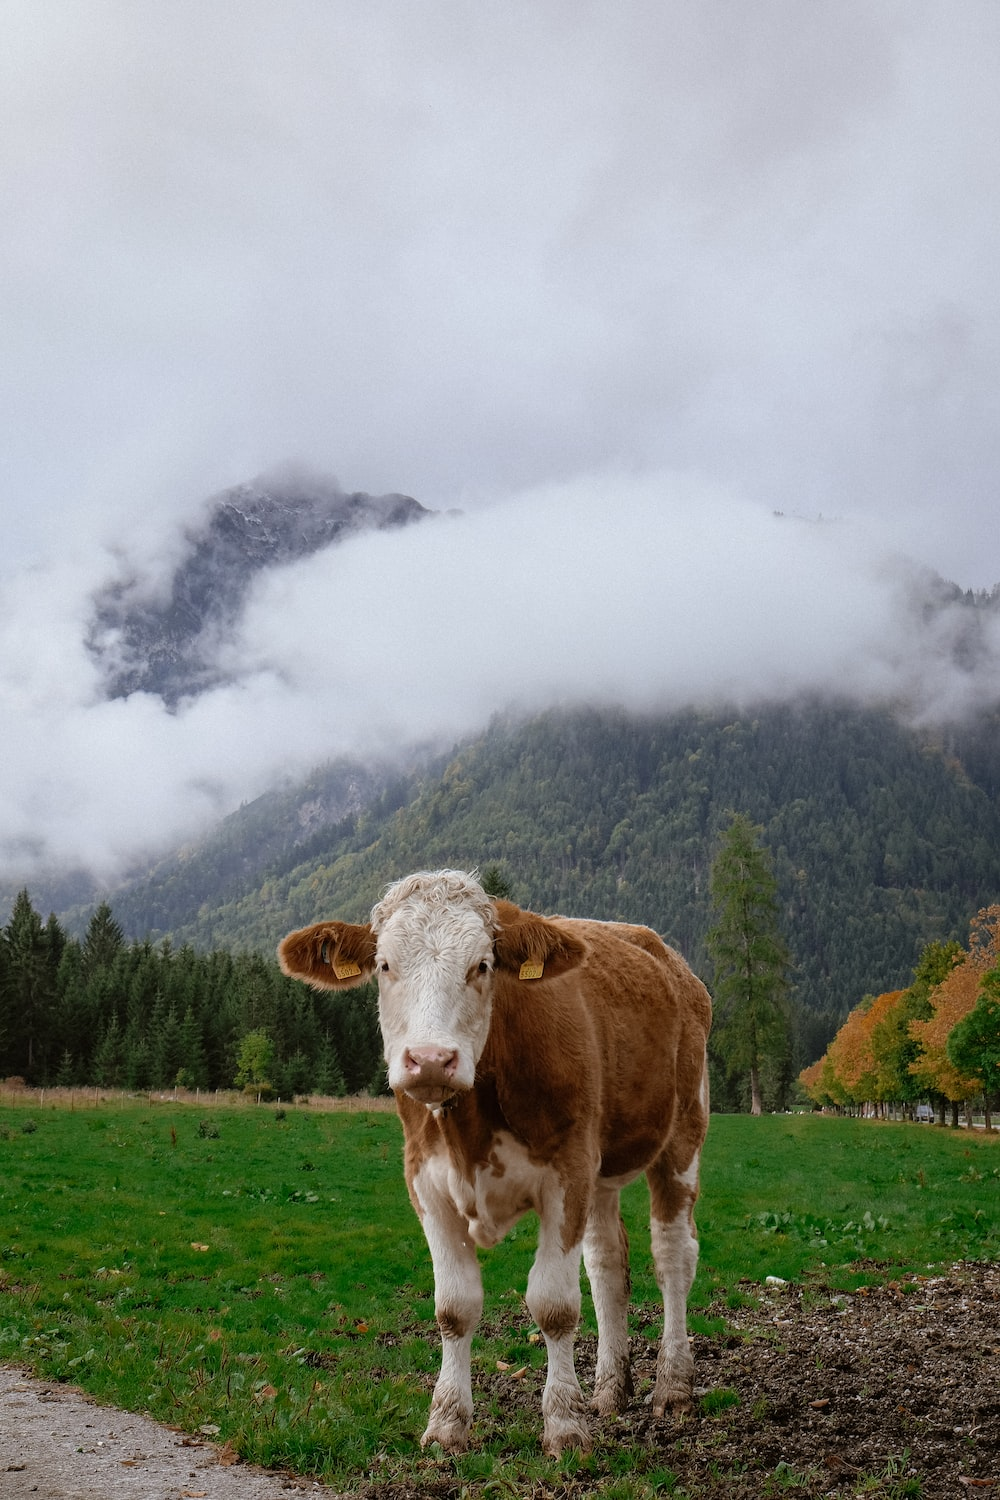 brown and white cow on grass field